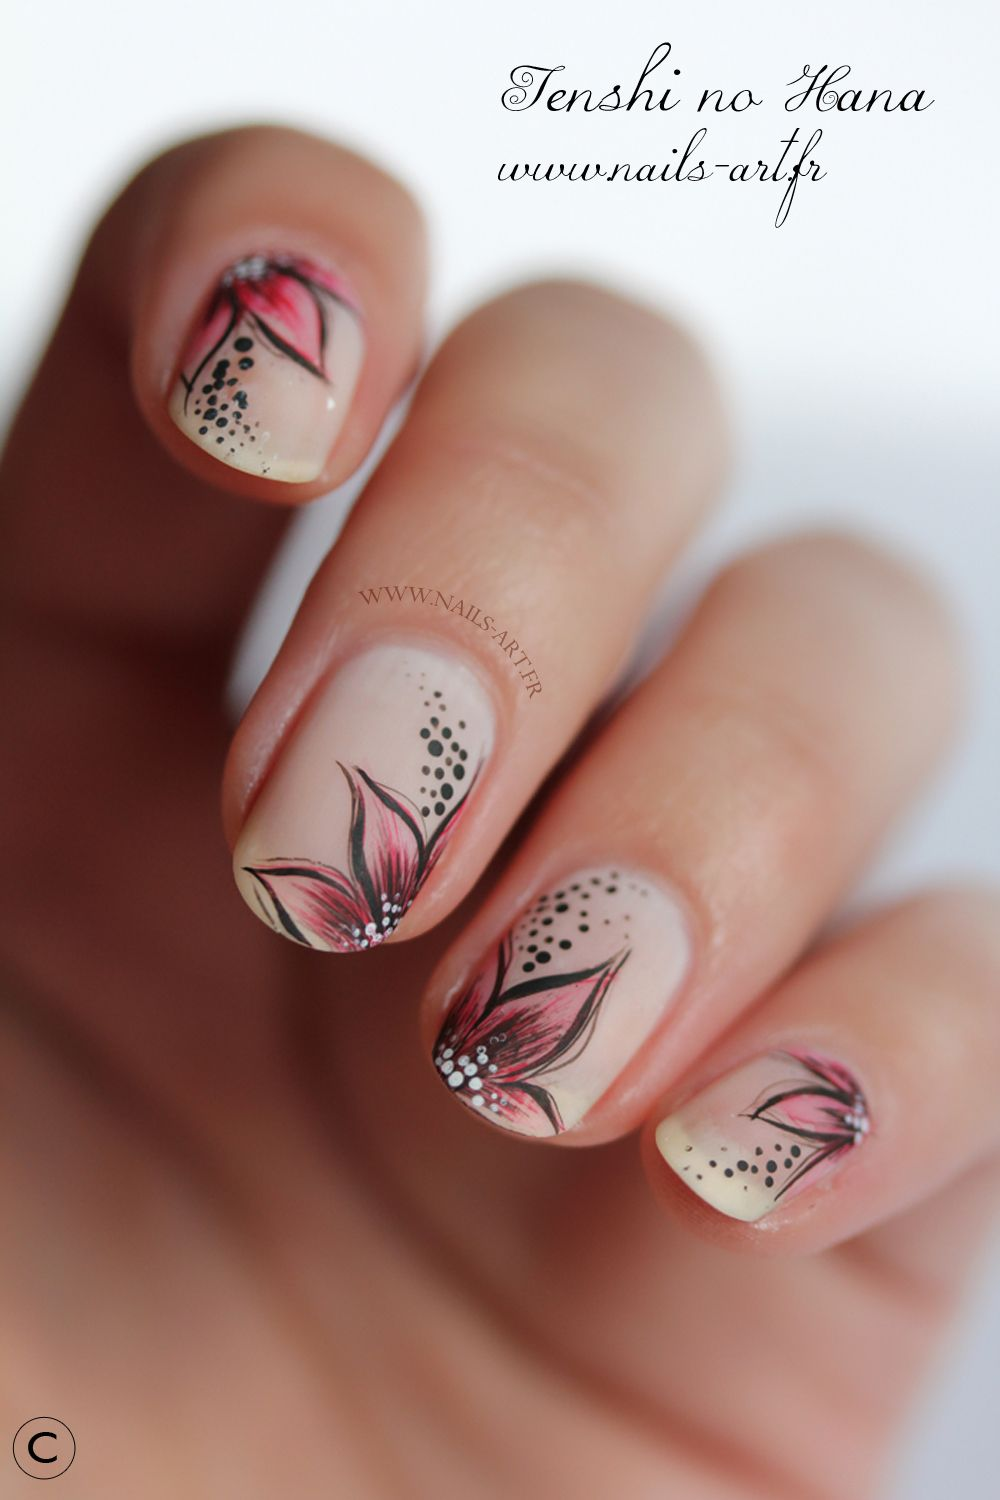 130 Easy And Beautiful Nail Art Designs 2018 Just For You | Flower ...